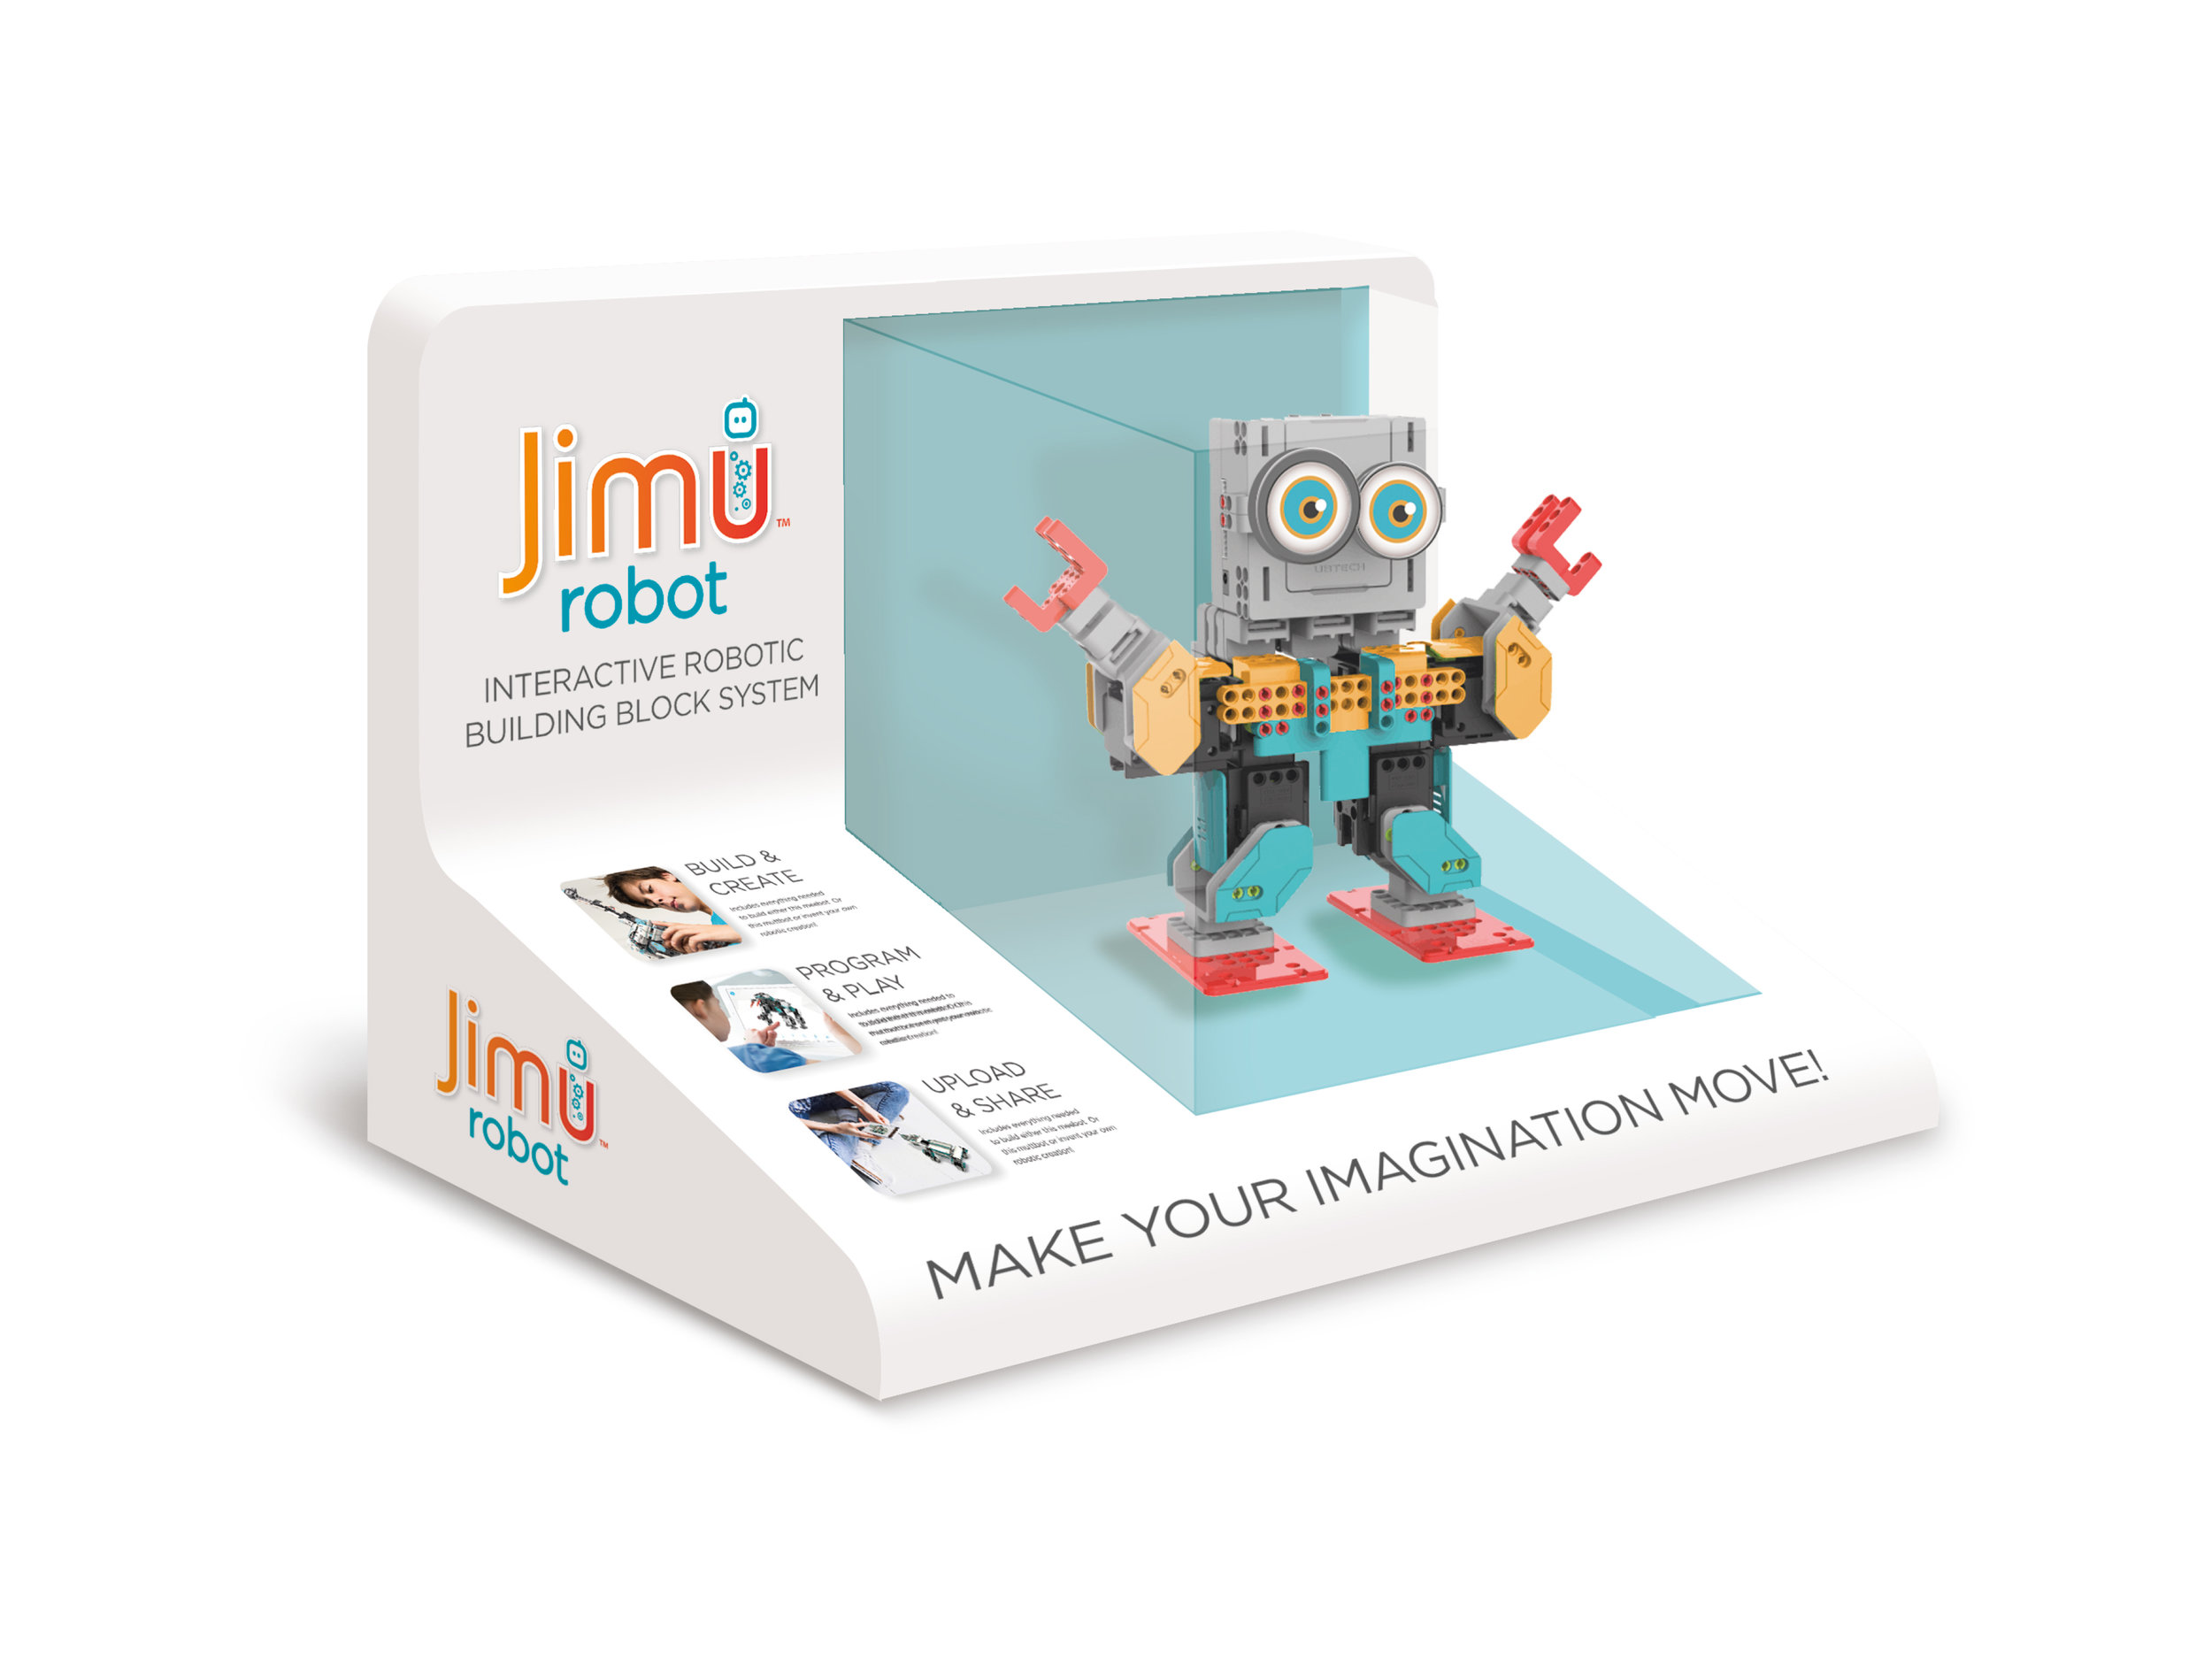 CLICK HERE TO SEE MORE ASSETS THAT WHOVILLE CREATED FOR   JIMU ROBOT